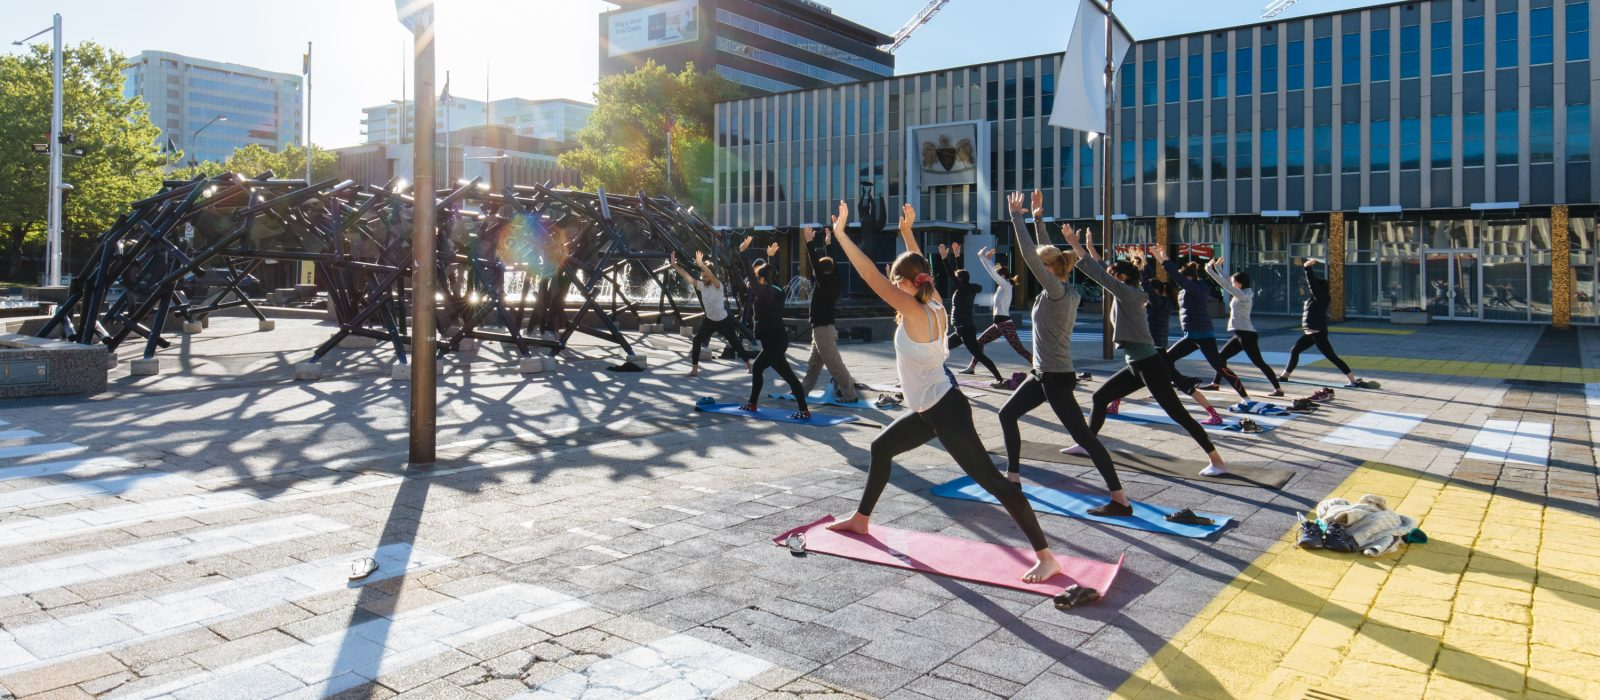 Yoga with Lululemon. Photo: Five Foot Photography